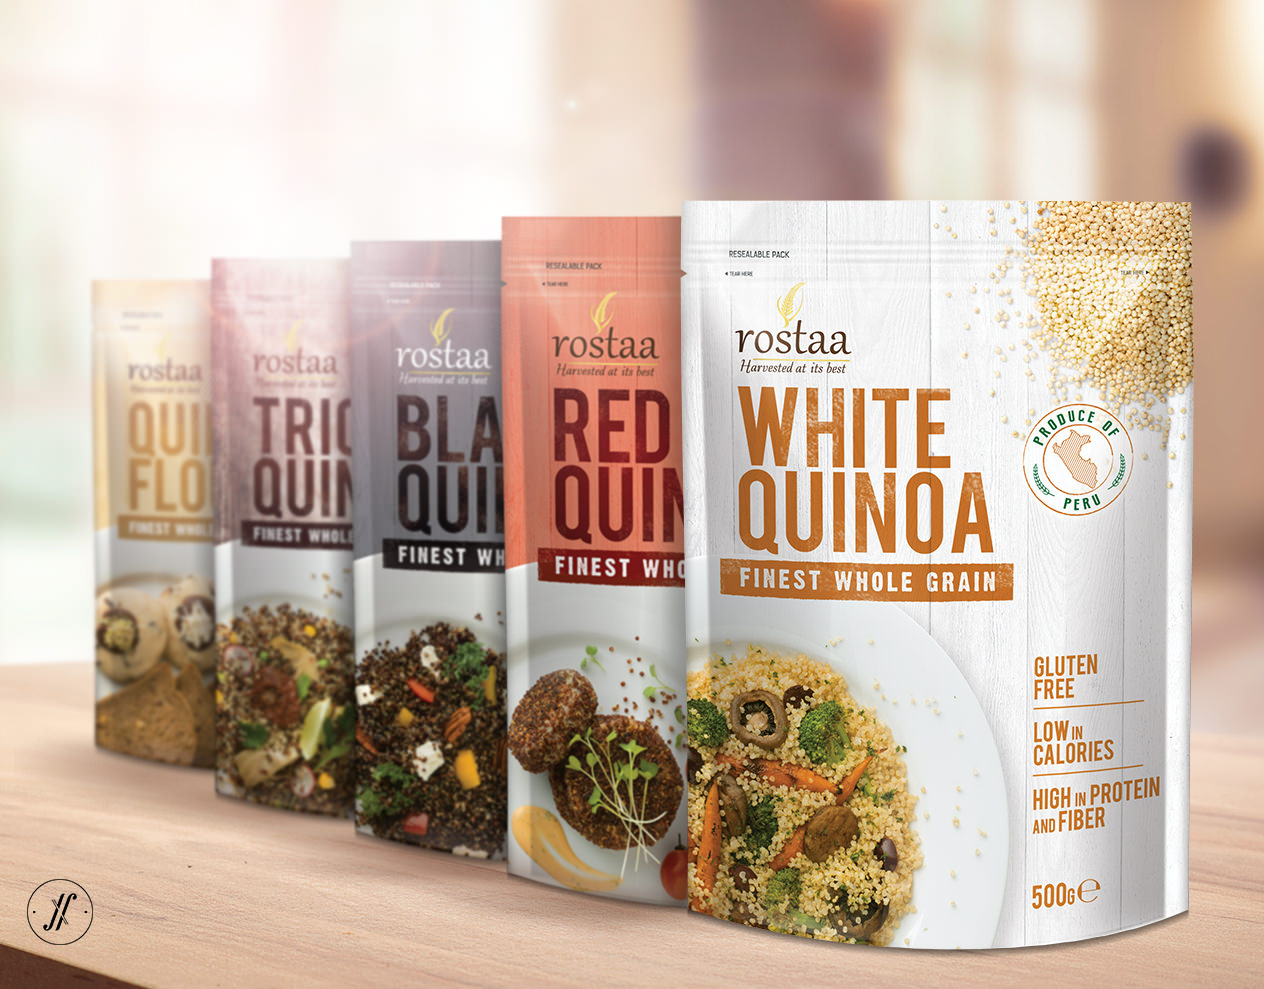 Yellow-Fishes-Best-Branding-Agency-Mumbai-India-Packaging-Design-Agency-Rostaa-Pacakging-Case-Study-Quinoa-all-range-design-on-table